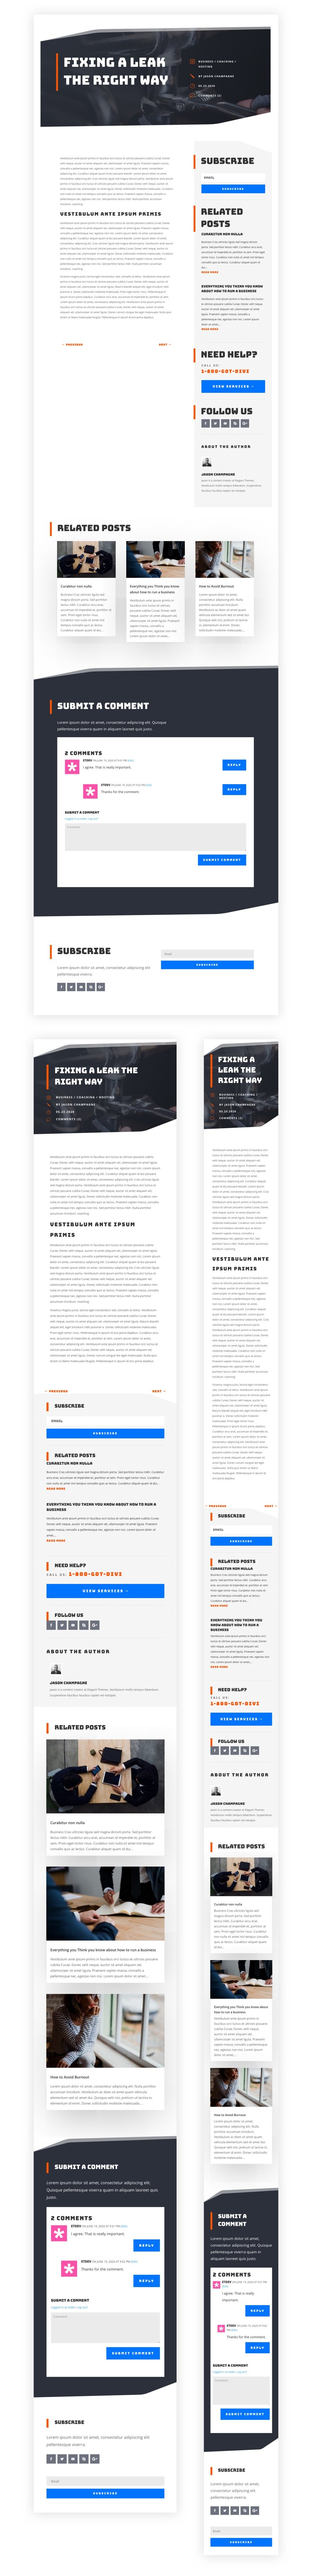 blog post template for Divi's Handyman Layout Pack